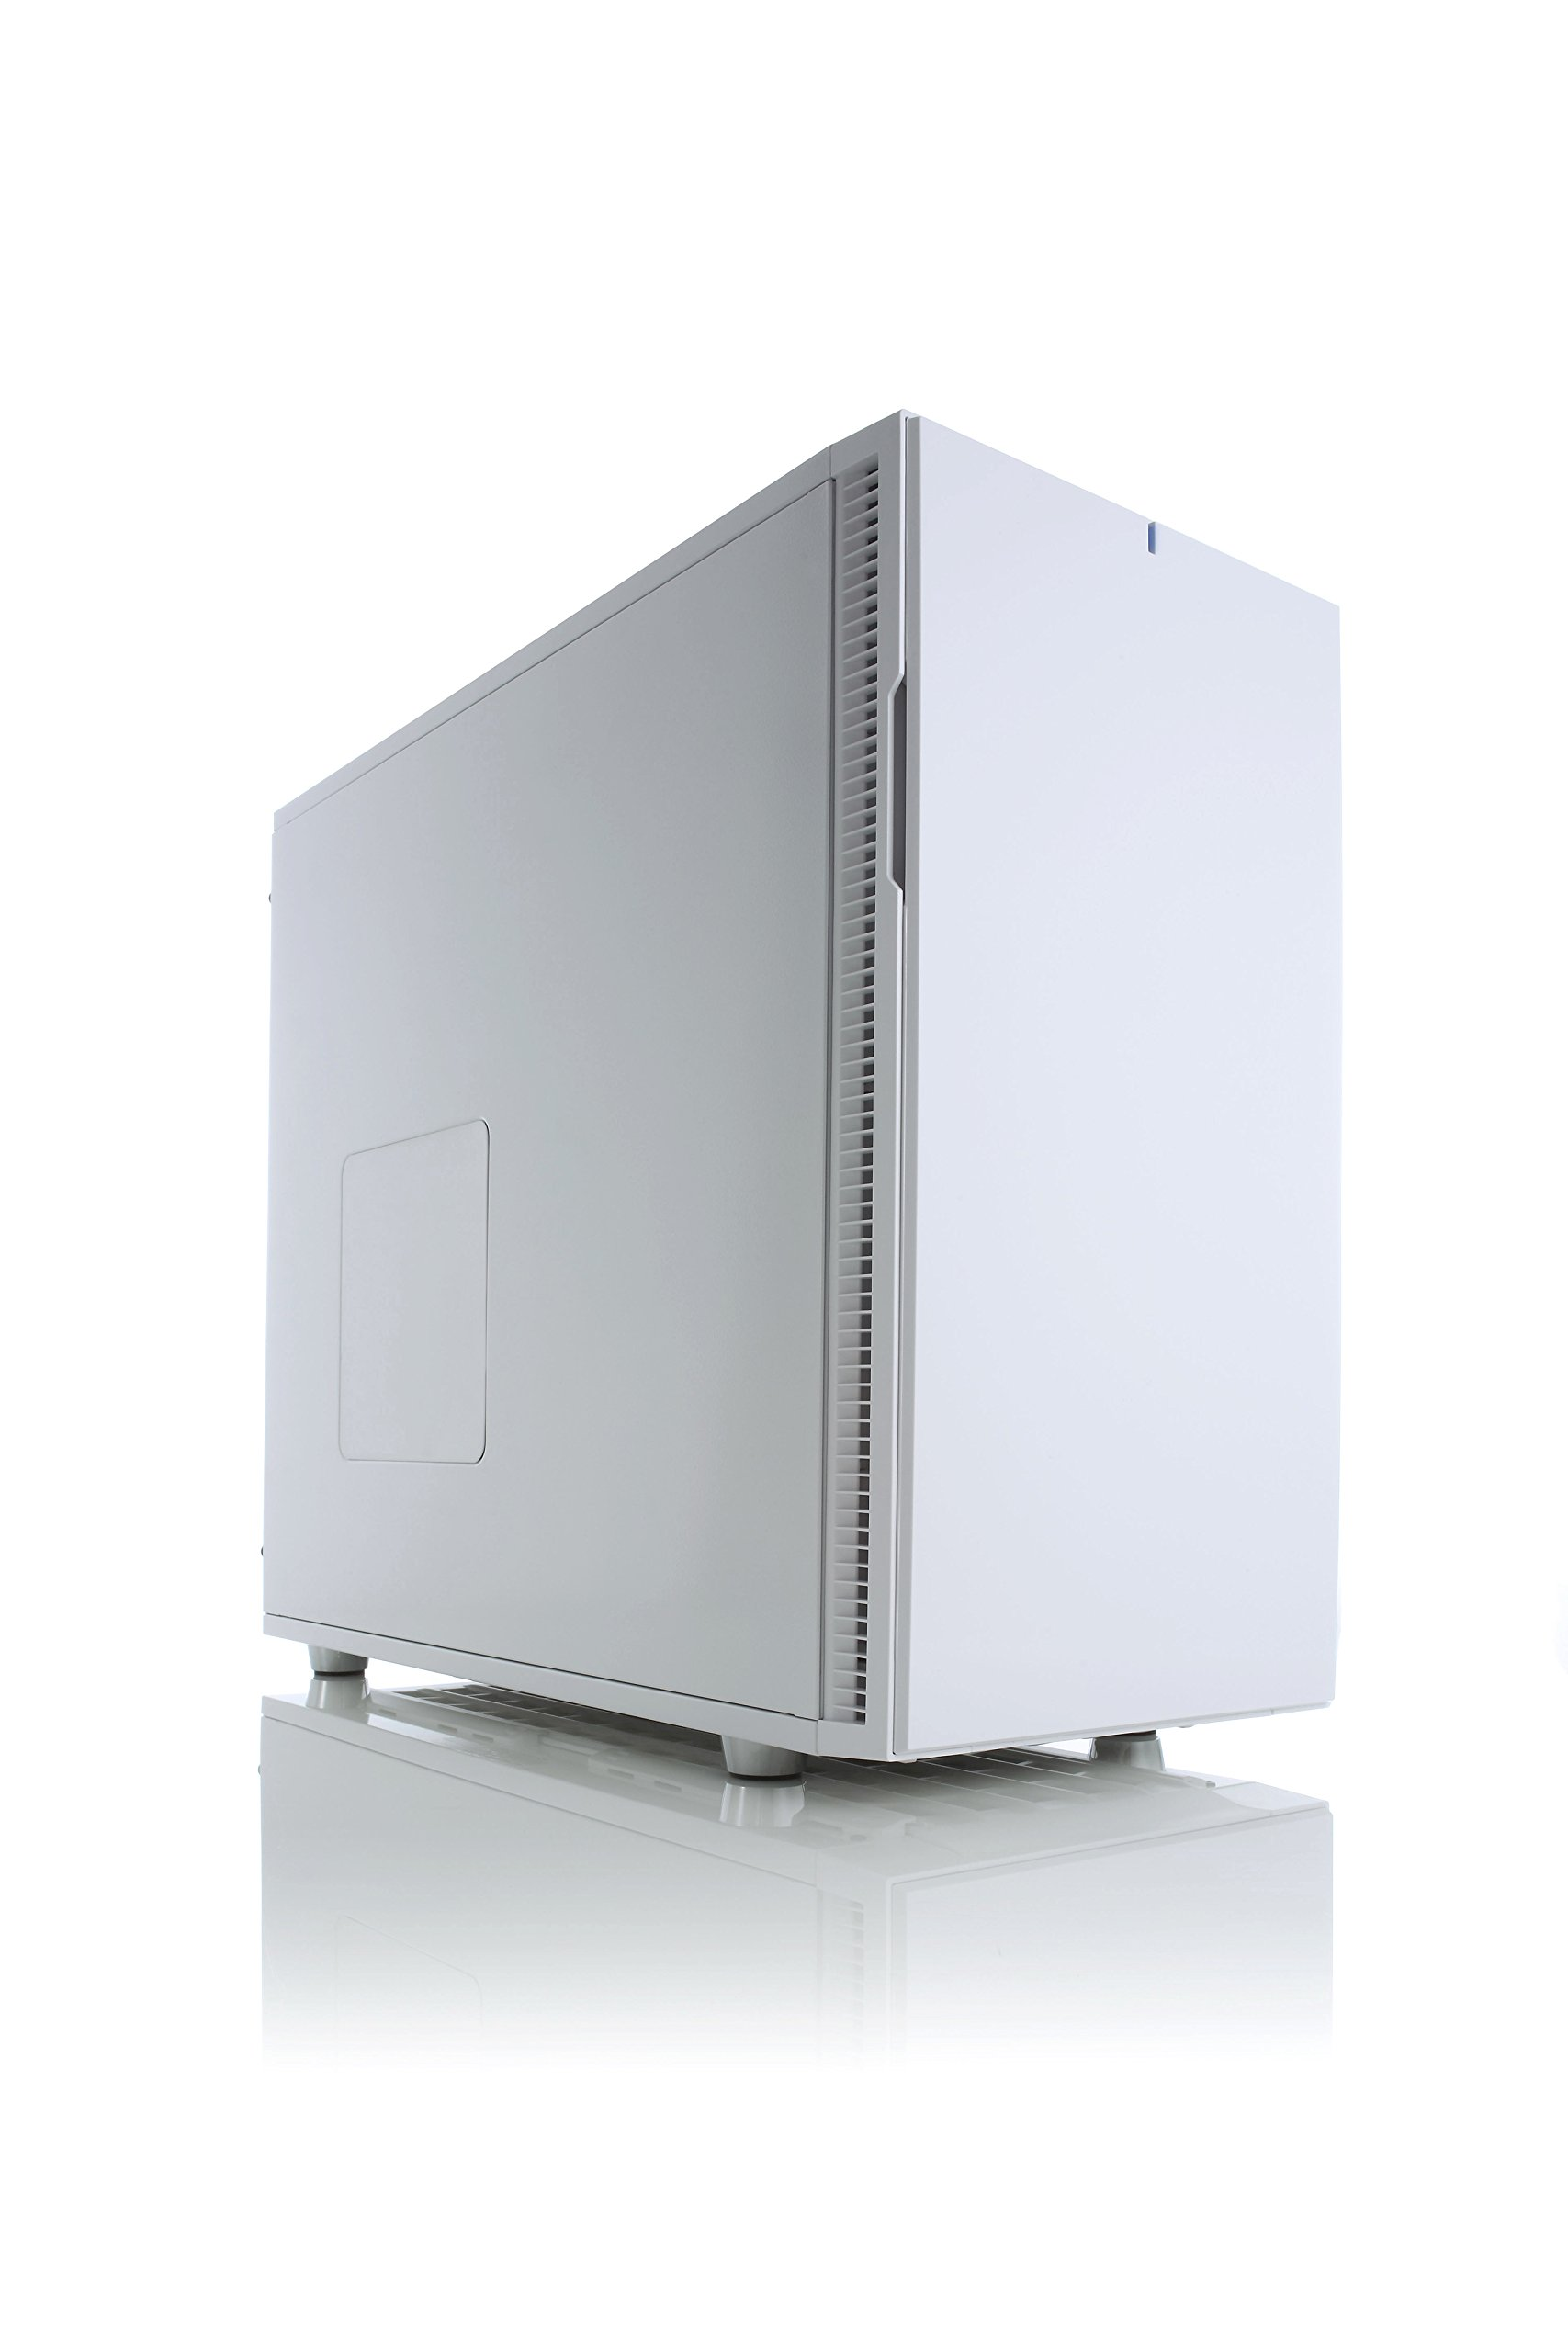 Fractal Design Define R5 White Gaming Case Cases FDCADEFR5WT by Fractal Design